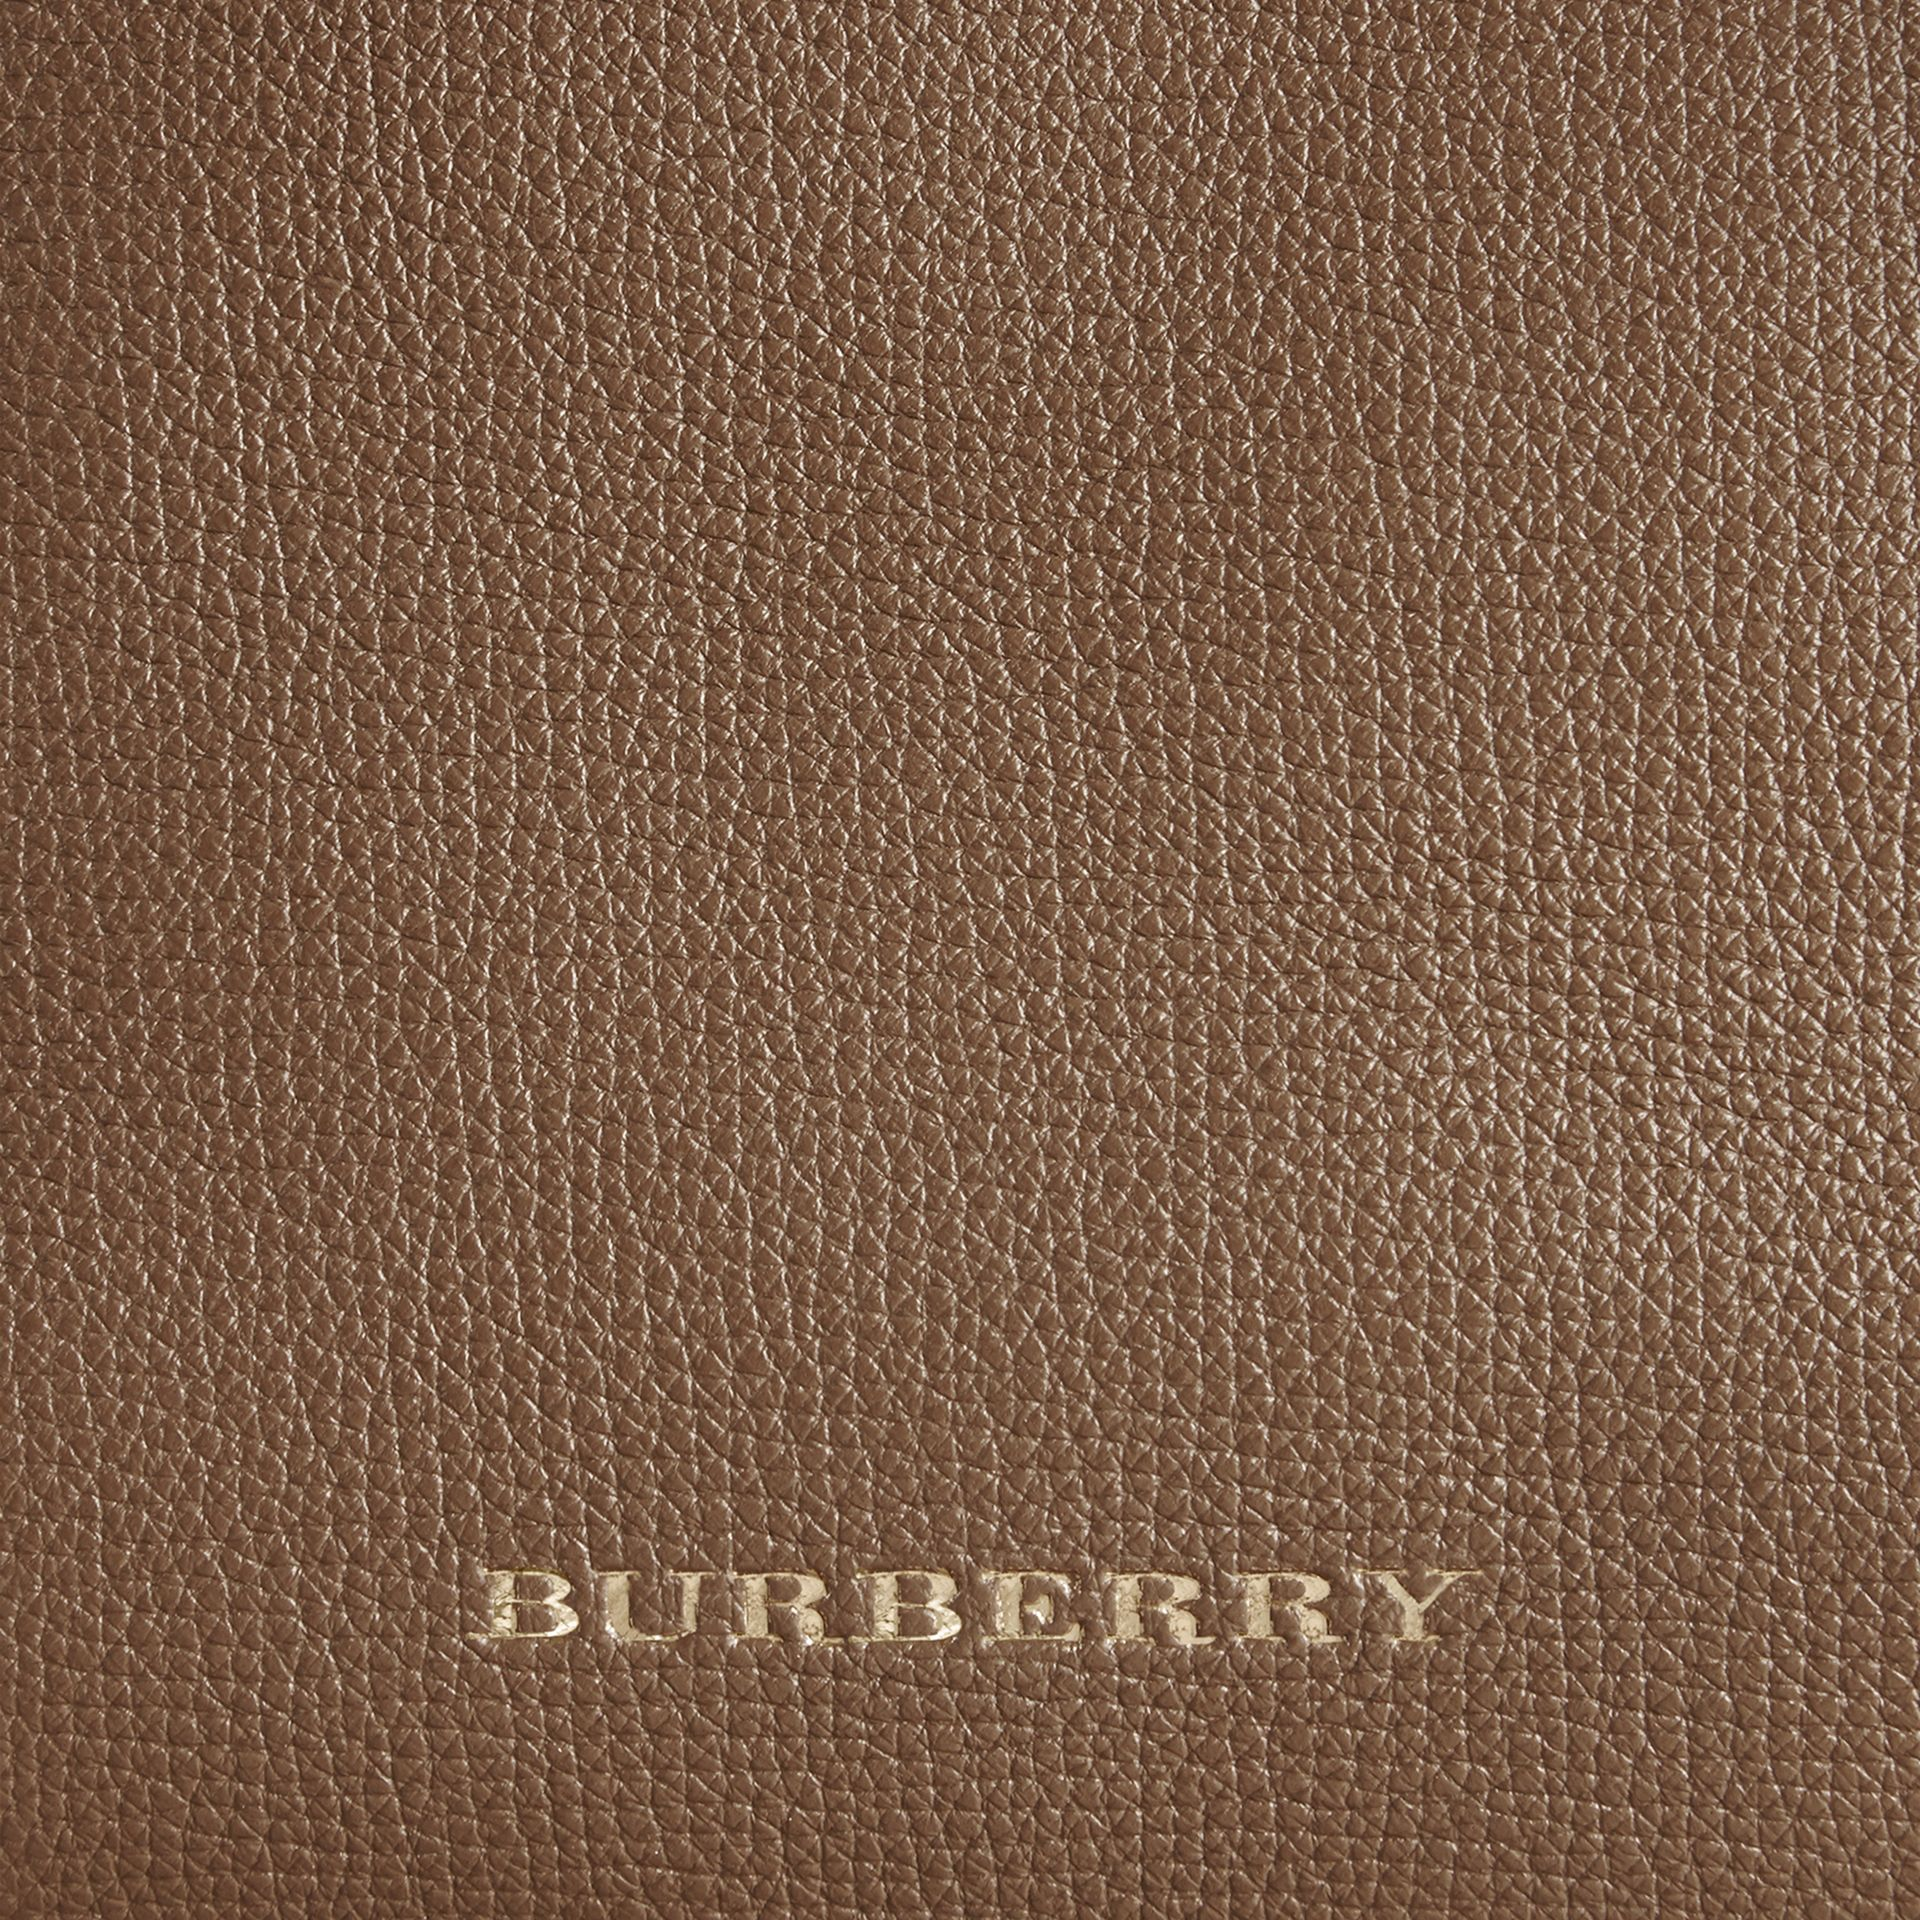 House Check and Leather Baby Changing Bag in Taupe Grey | Burberry - gallery image 2